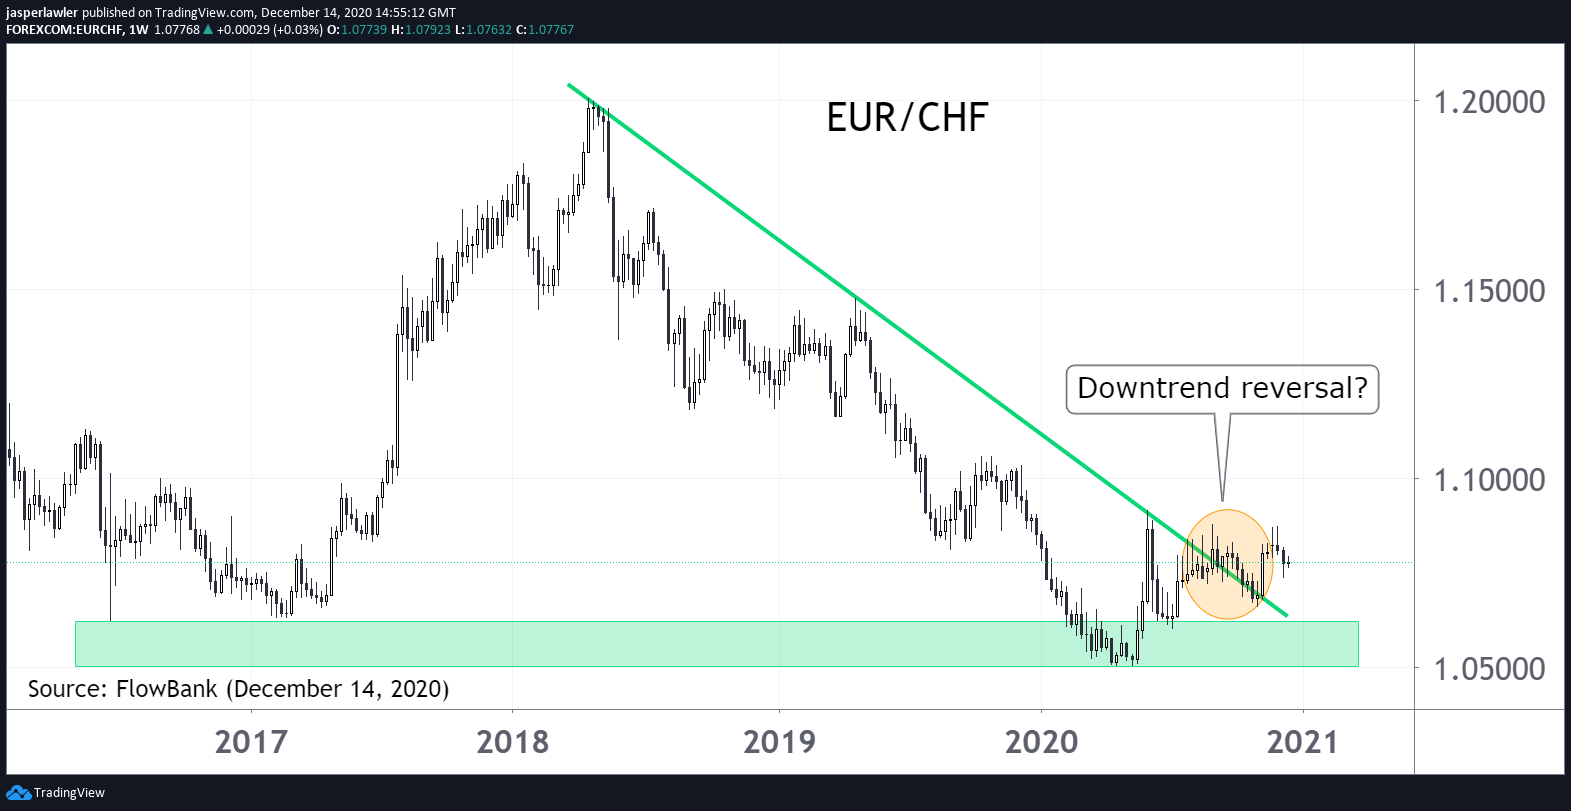 EUR/CHF downtrend breaking? #forex